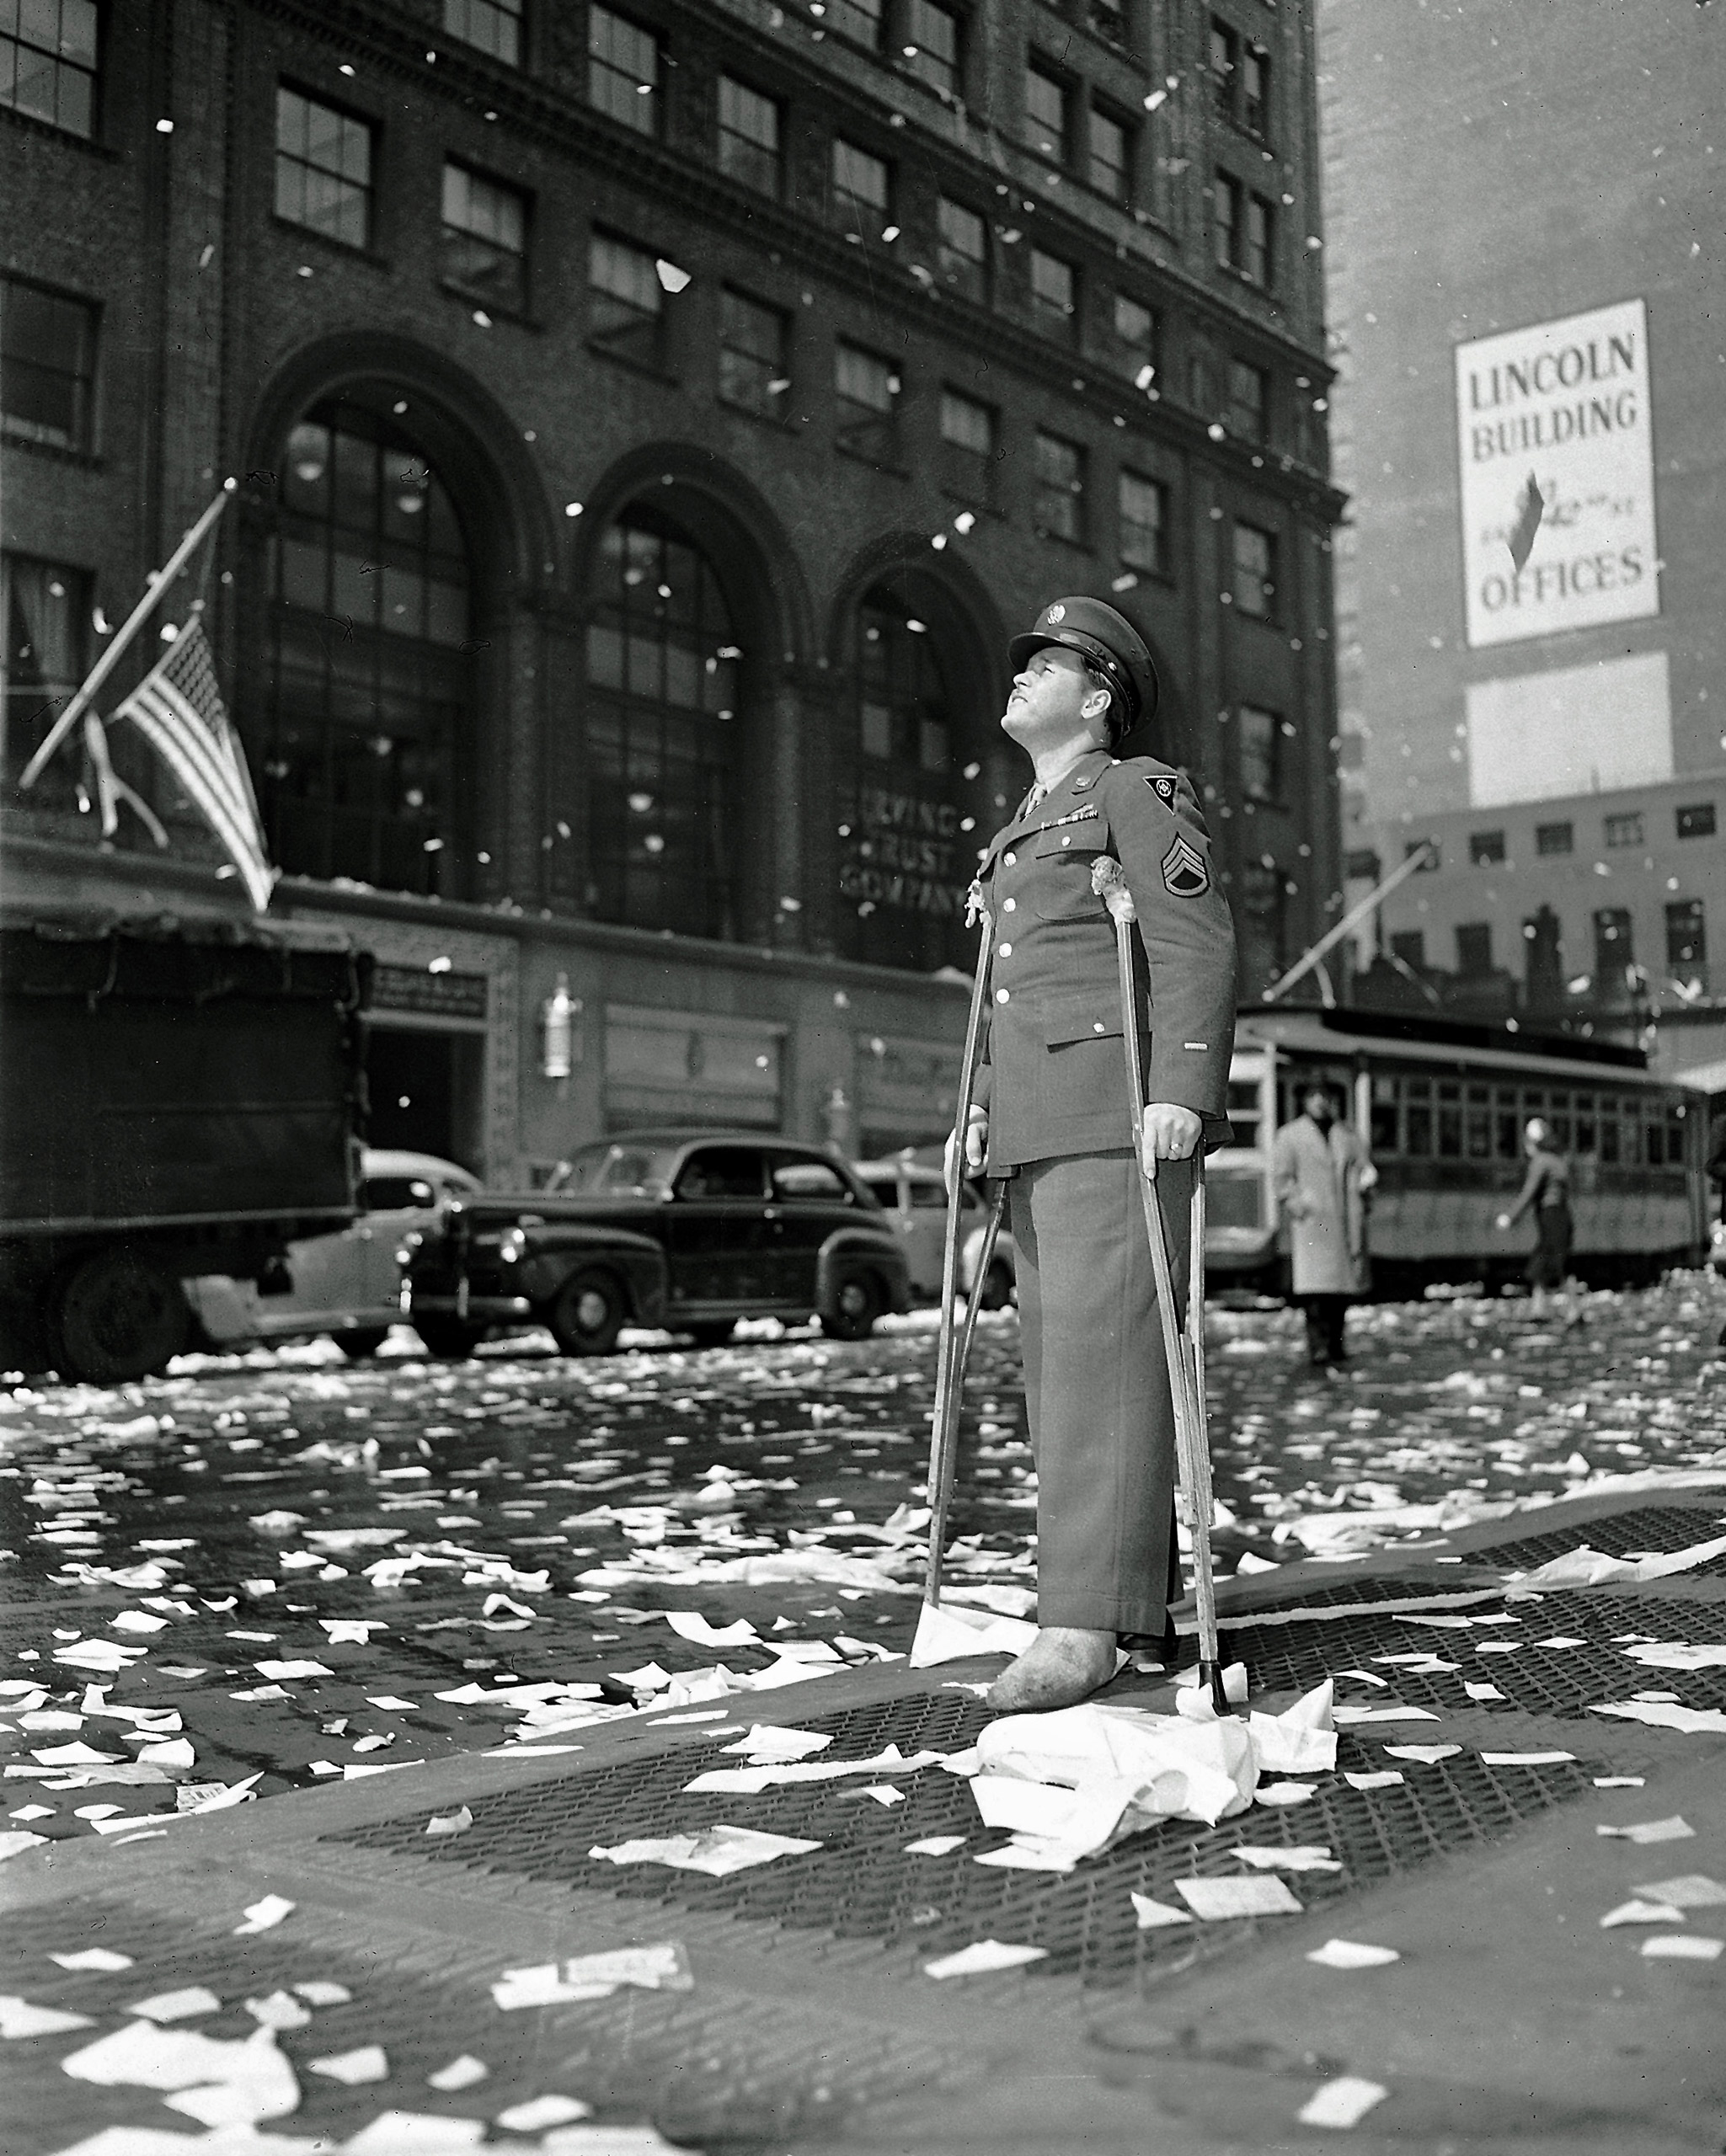 Staff Sgt. Arthur Moore of Buffalo, N.Y., who was wounded in Belgium, stands on 42nd Street near Grand Central Station in New York Monday, May 7, 1945 as New Yorkers celebrate news of VE Day, victory over Nazi Germany.